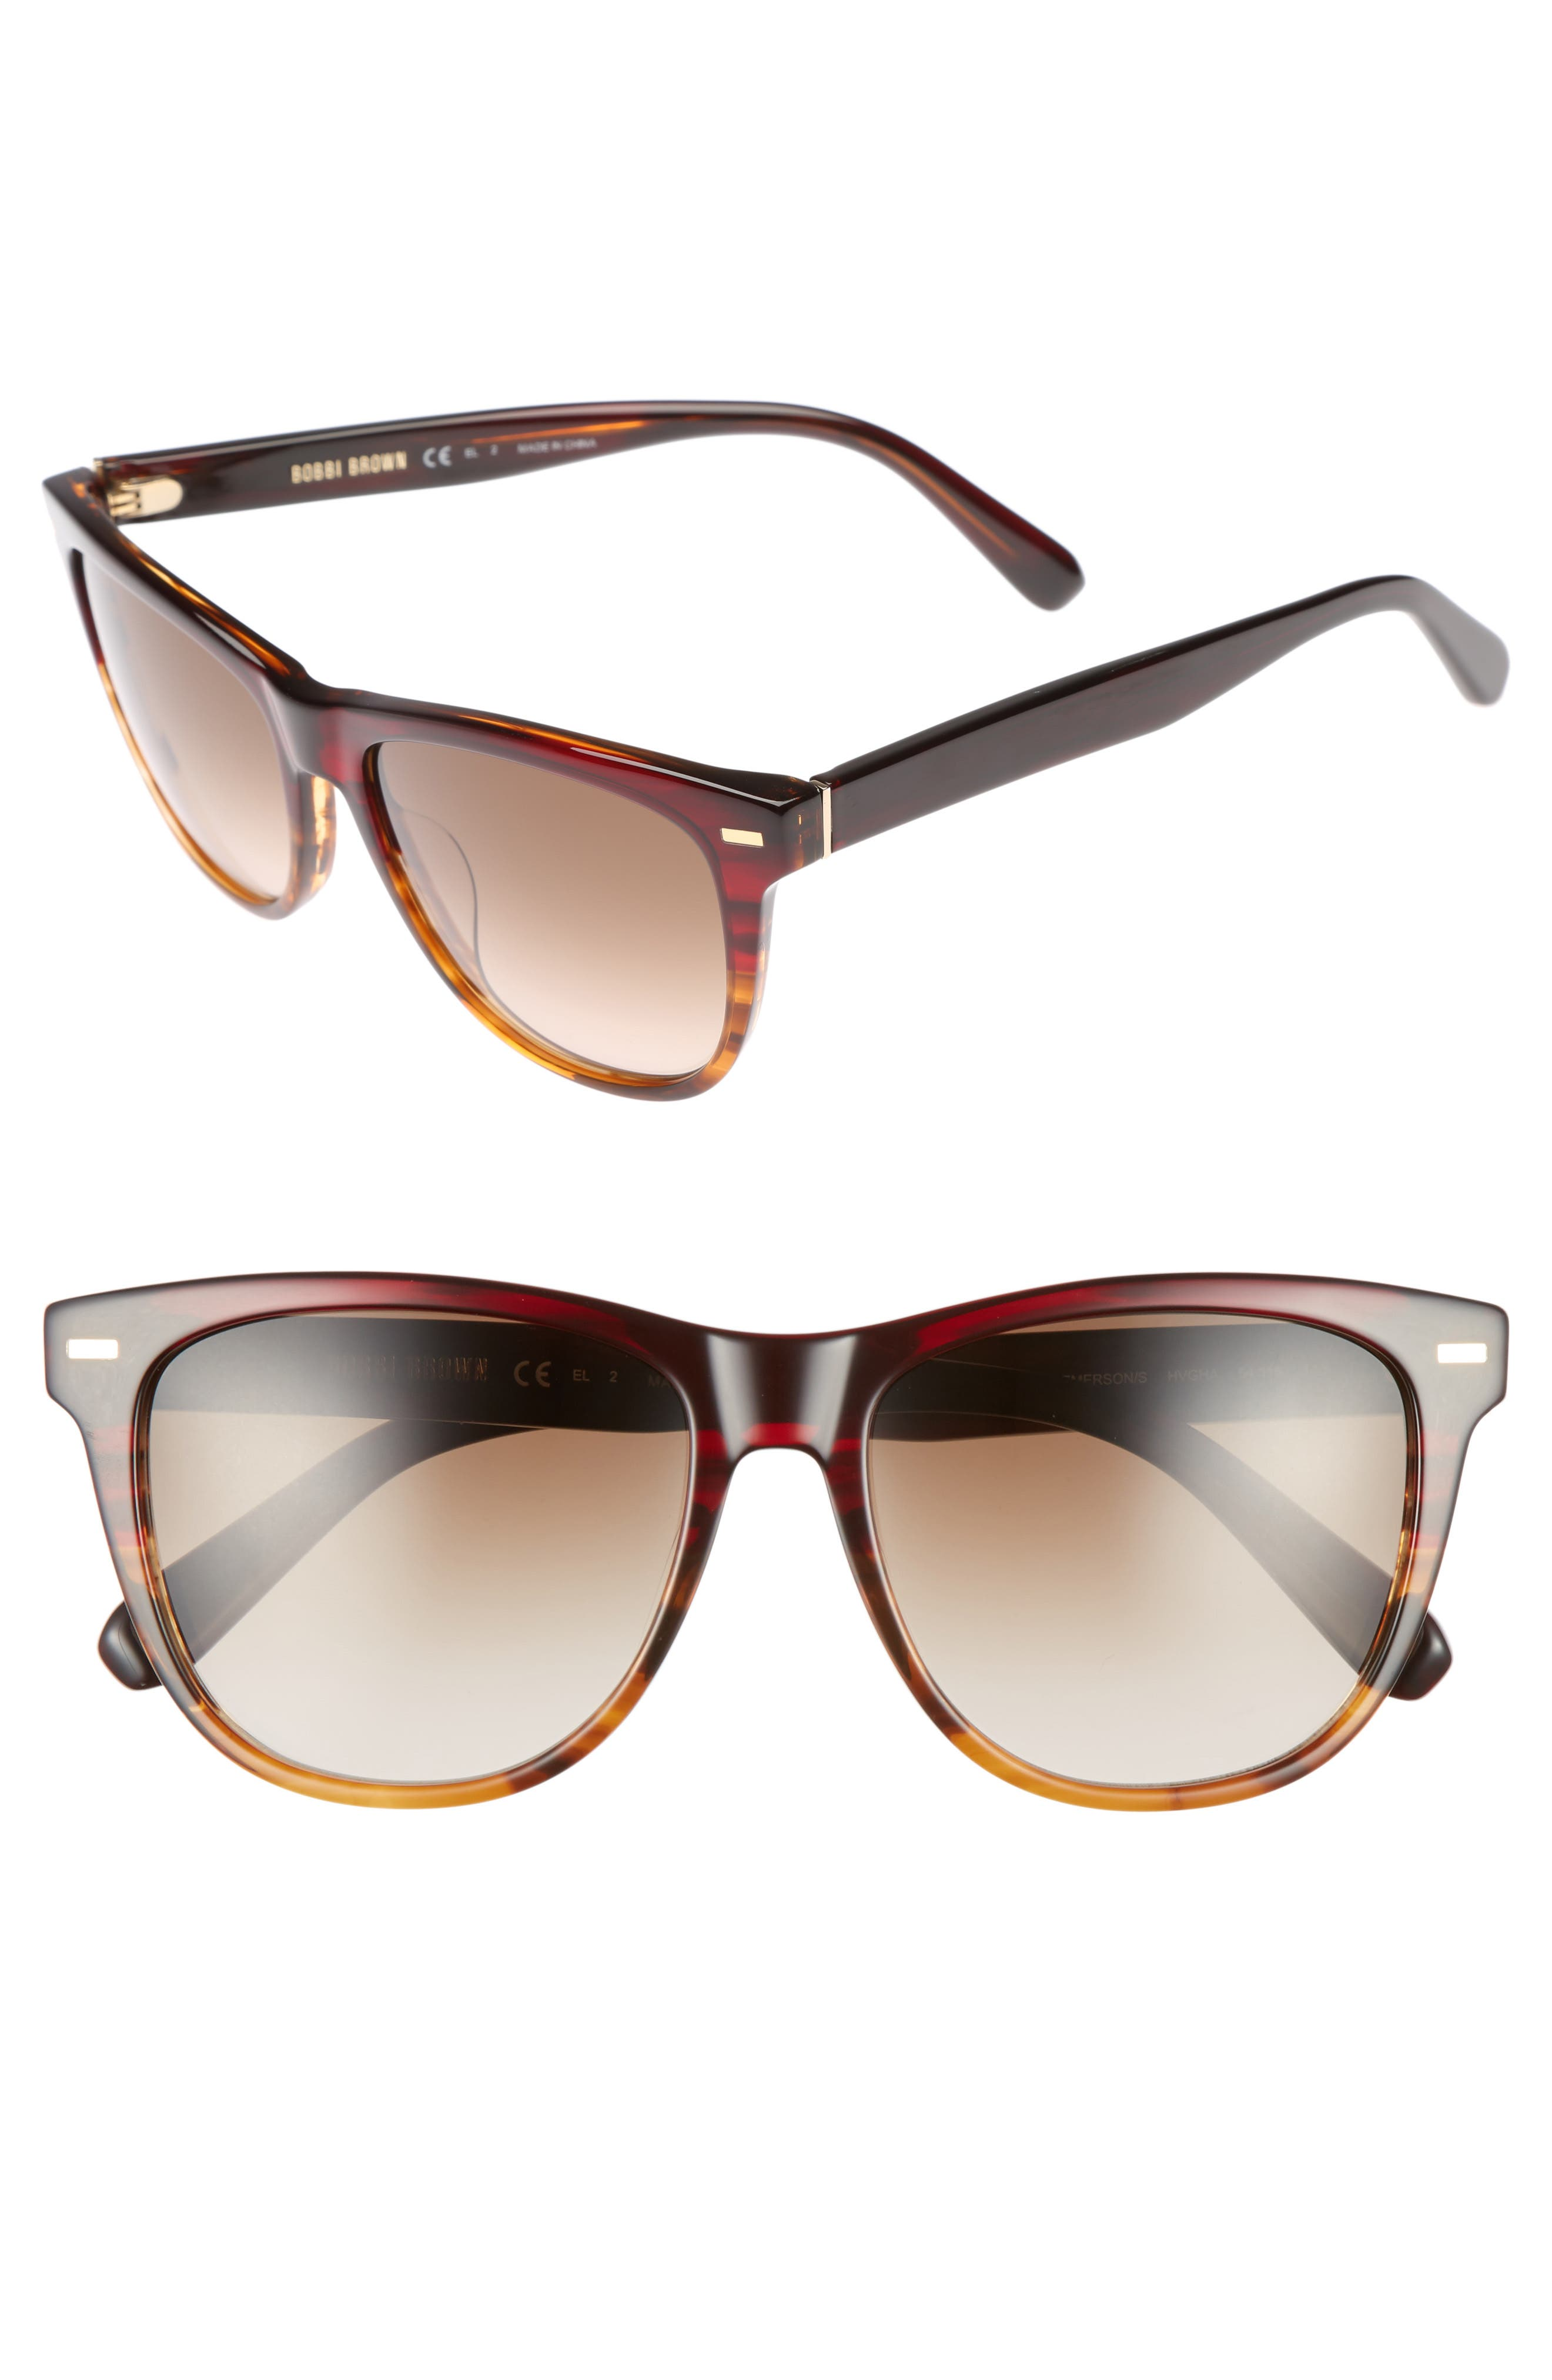 Bobbi Brown The Emerson 54mm Sunglasses